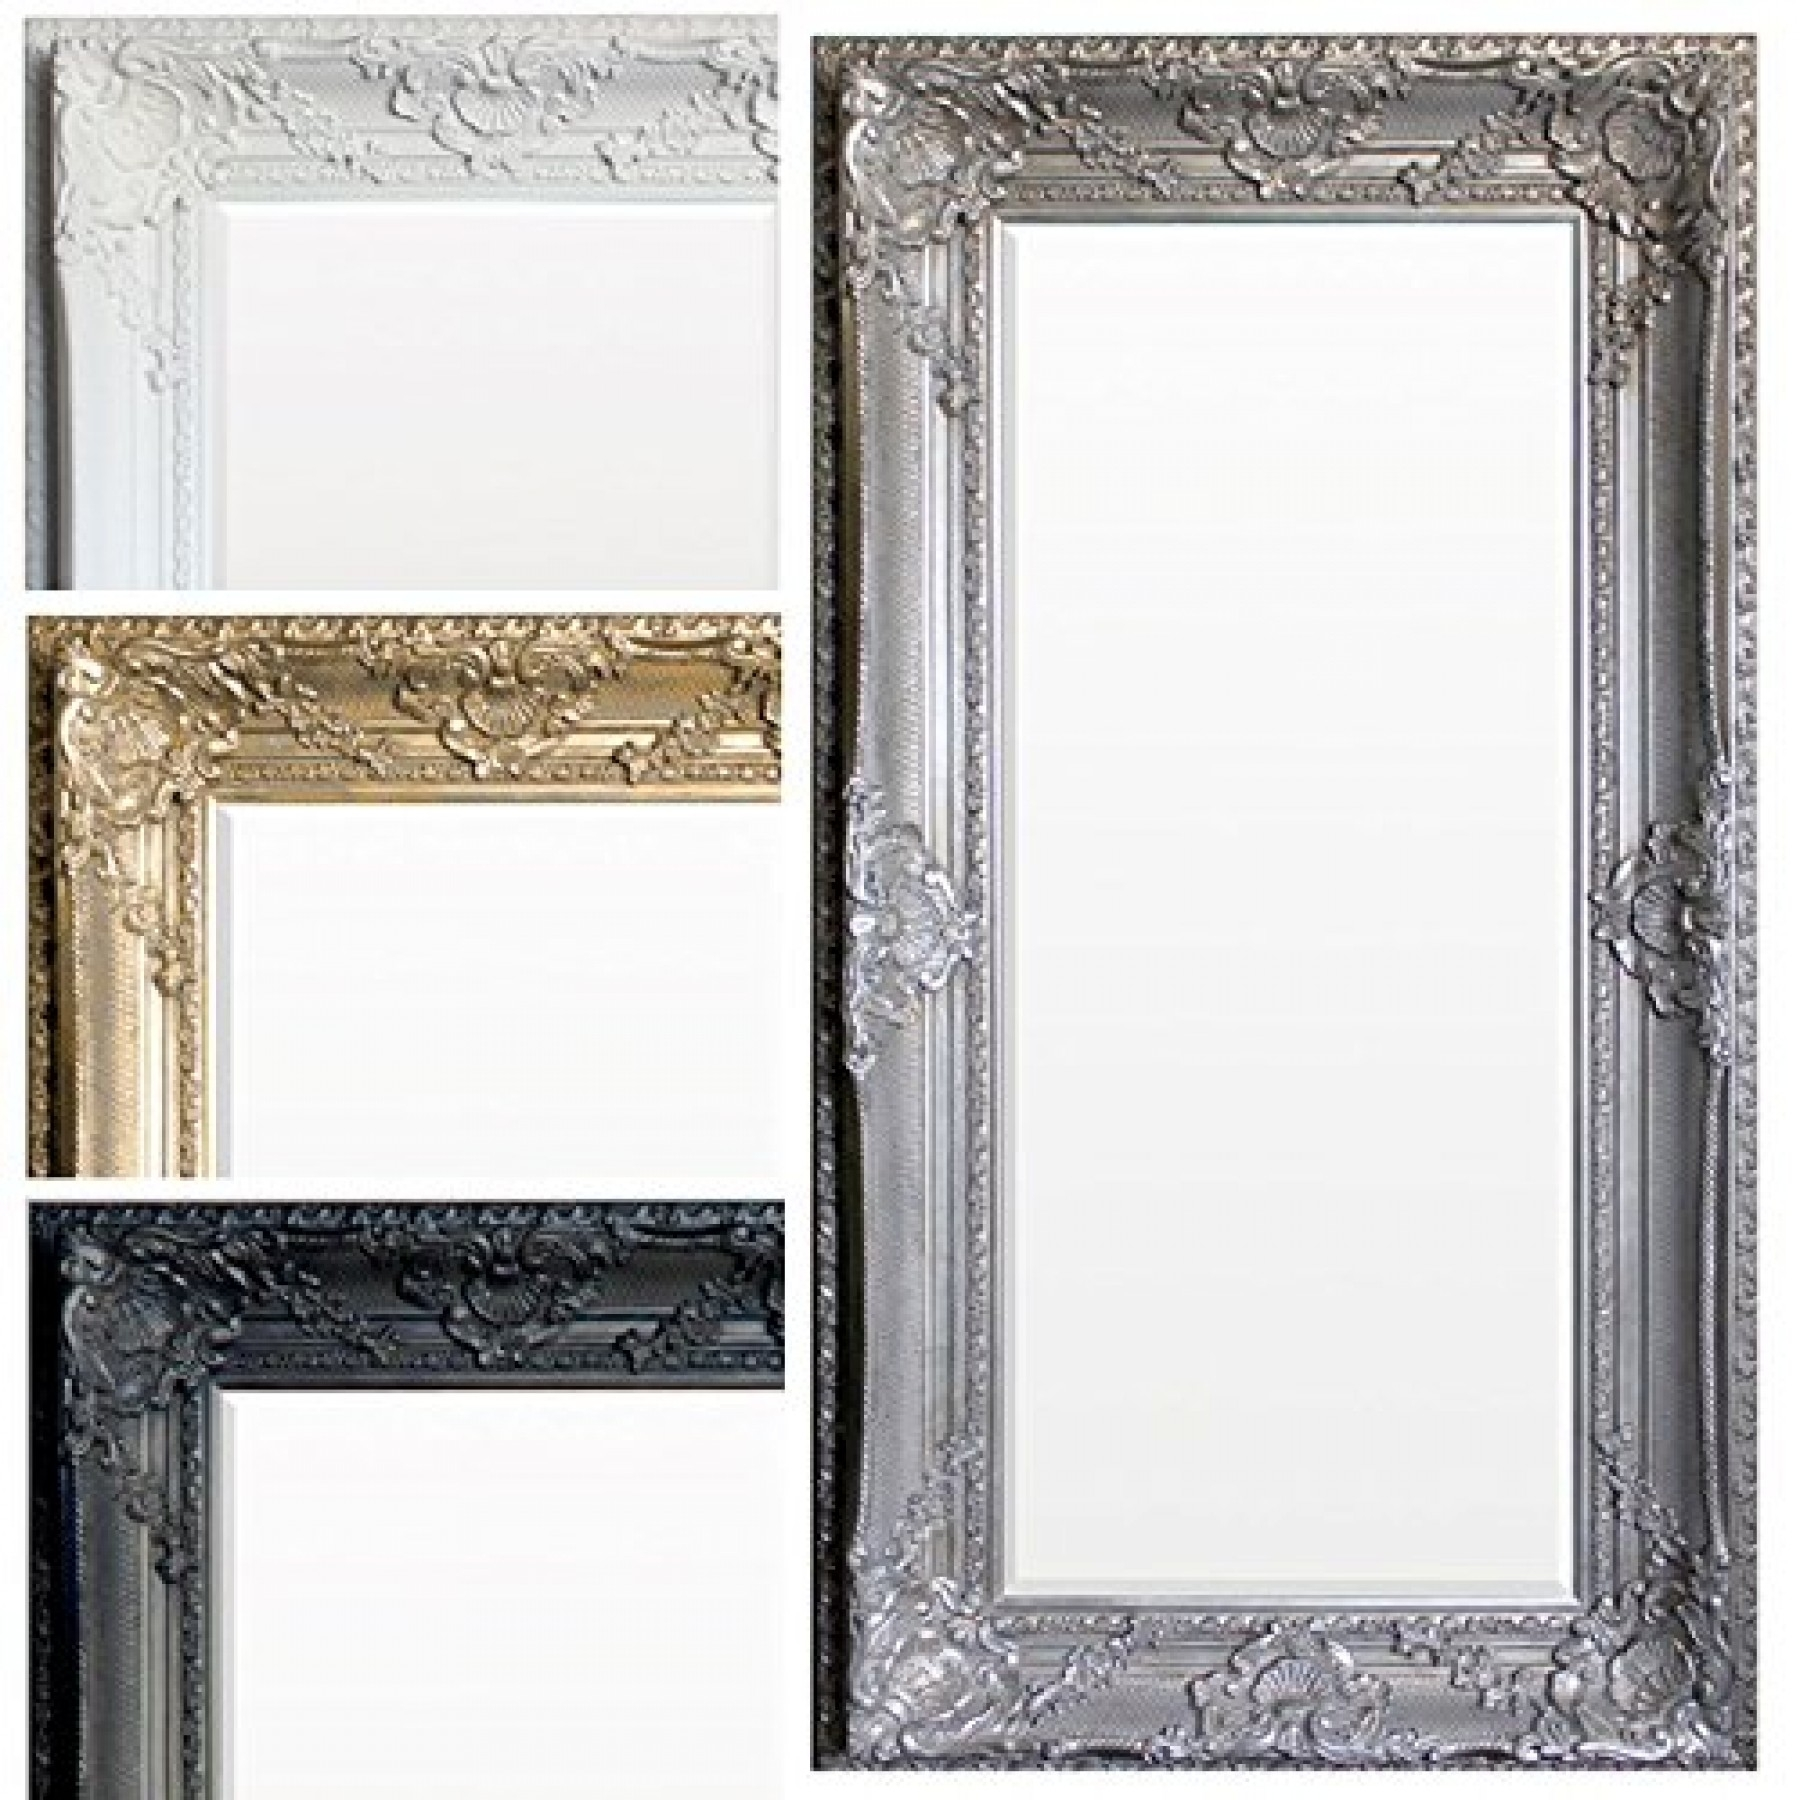 Ornate Shab Chic Mirror Extra Large In Gold Shabby Chic Mirror (Image 11 of 15)